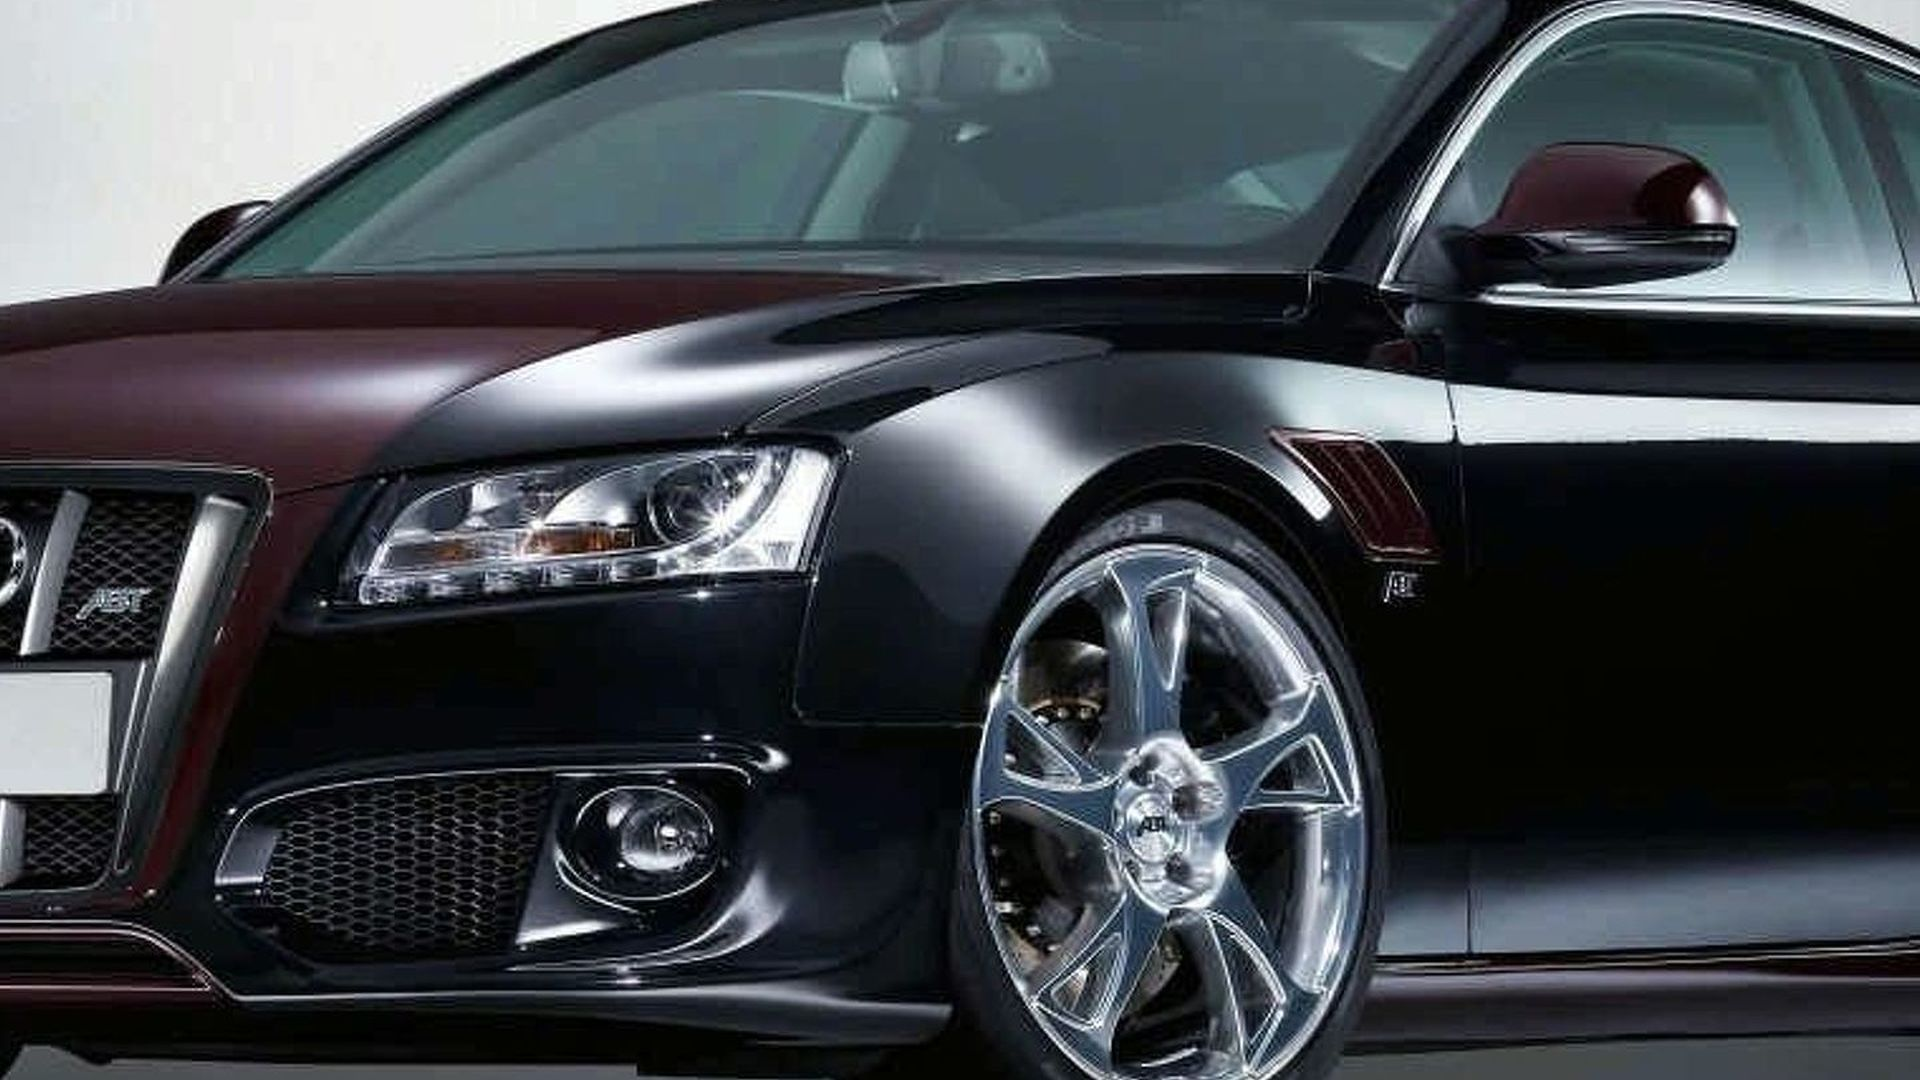 Tuning By Abt Sportsline For All Audi A3 Models Autos Post